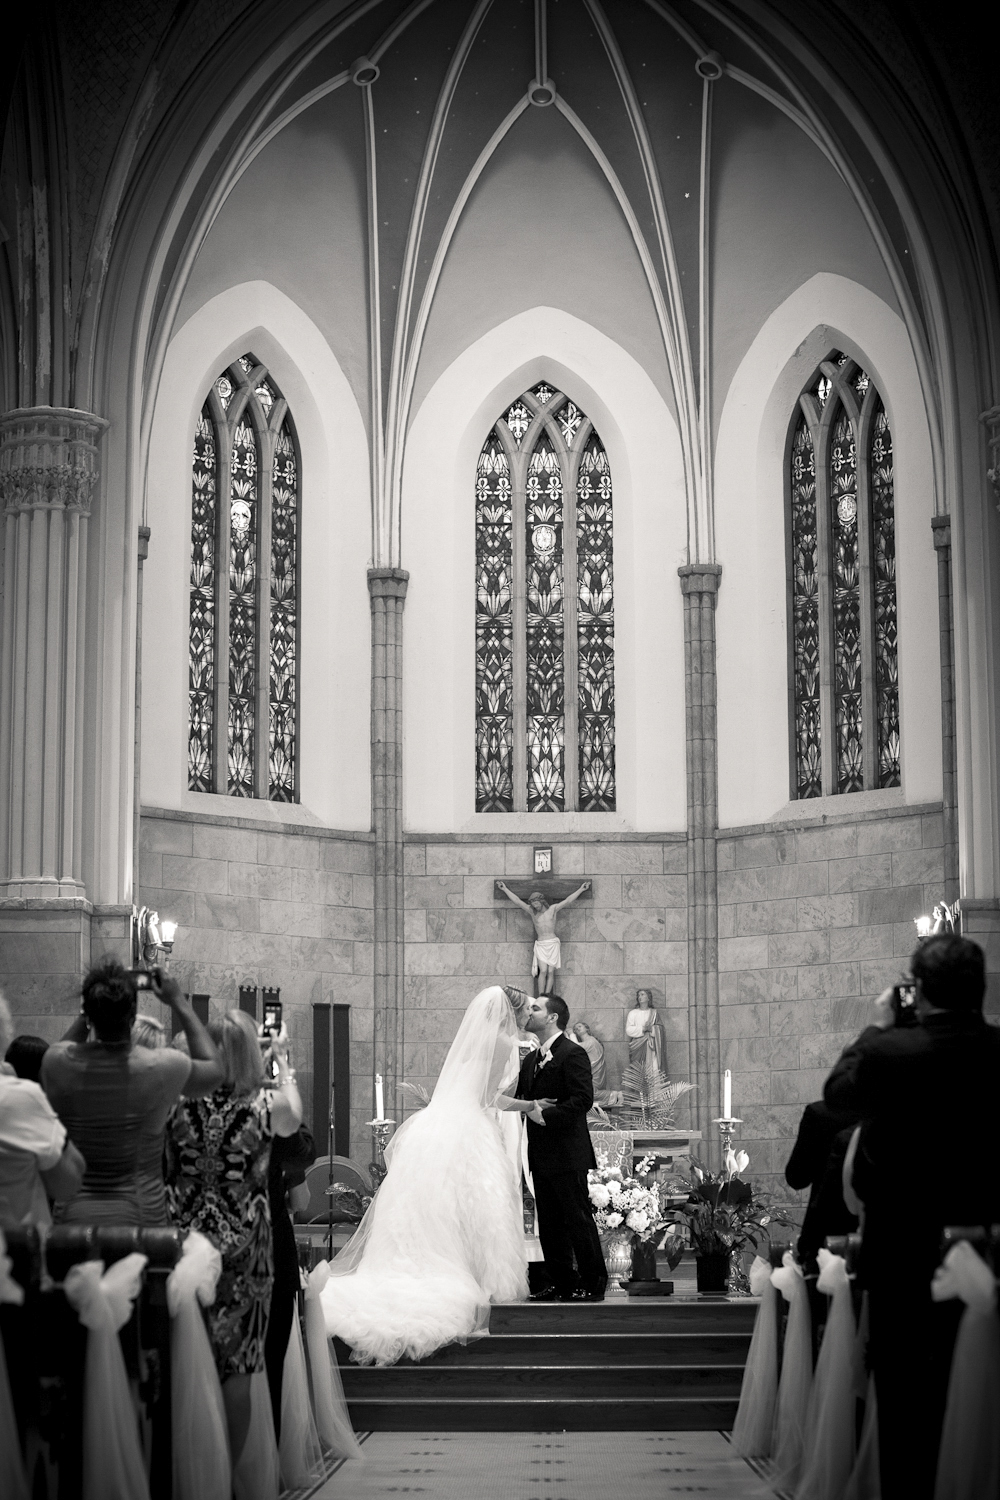 Saint-Marys-Cathedral-Indianapolis-Indiana-Wedding-Photographer-Crowes-Eye-Photography-302.jpg